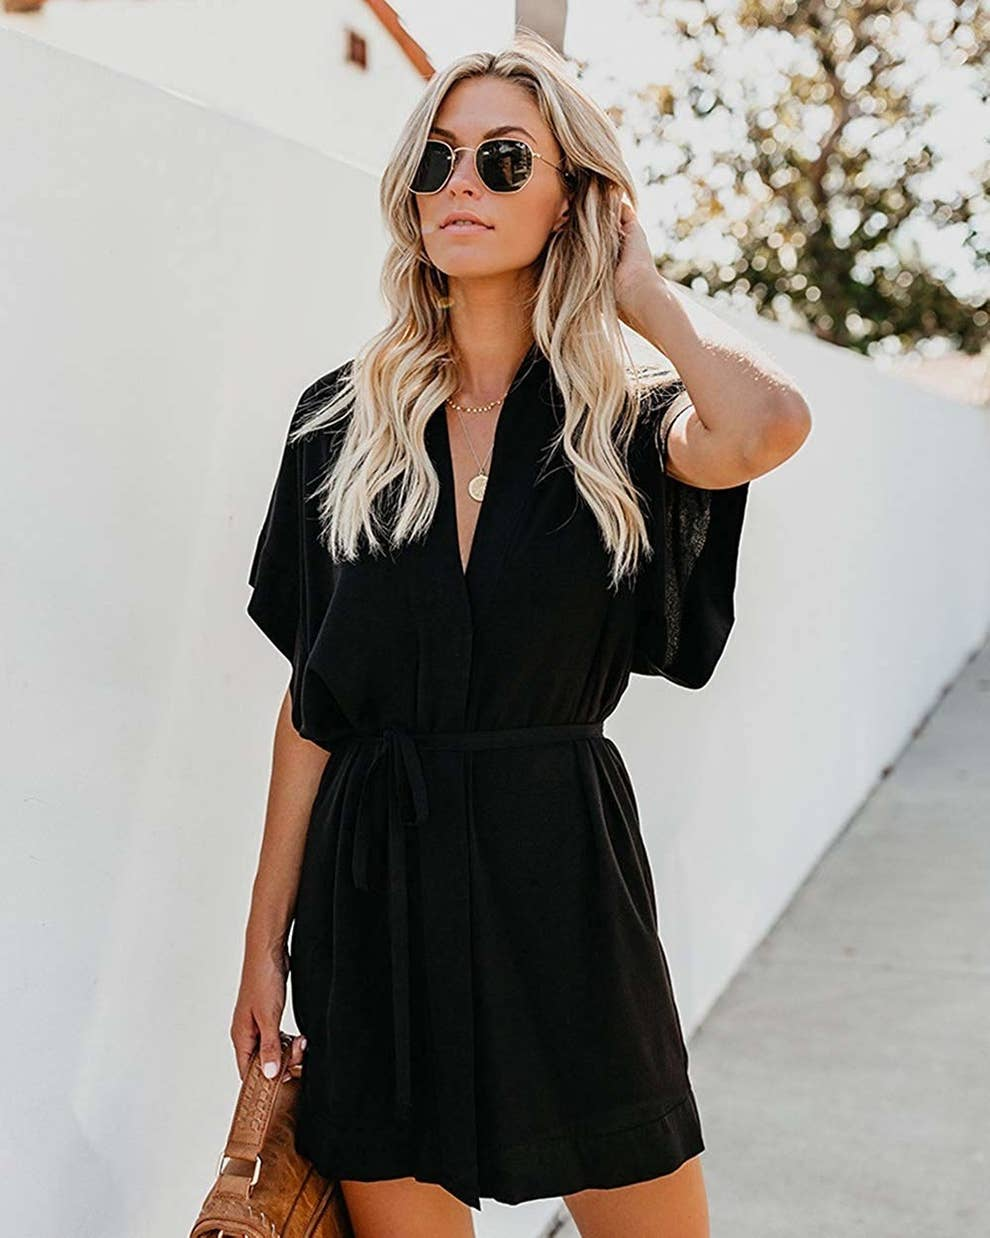 dc36da66f1 38 Stylish Dresses To Get You Through Spring And Into Summer